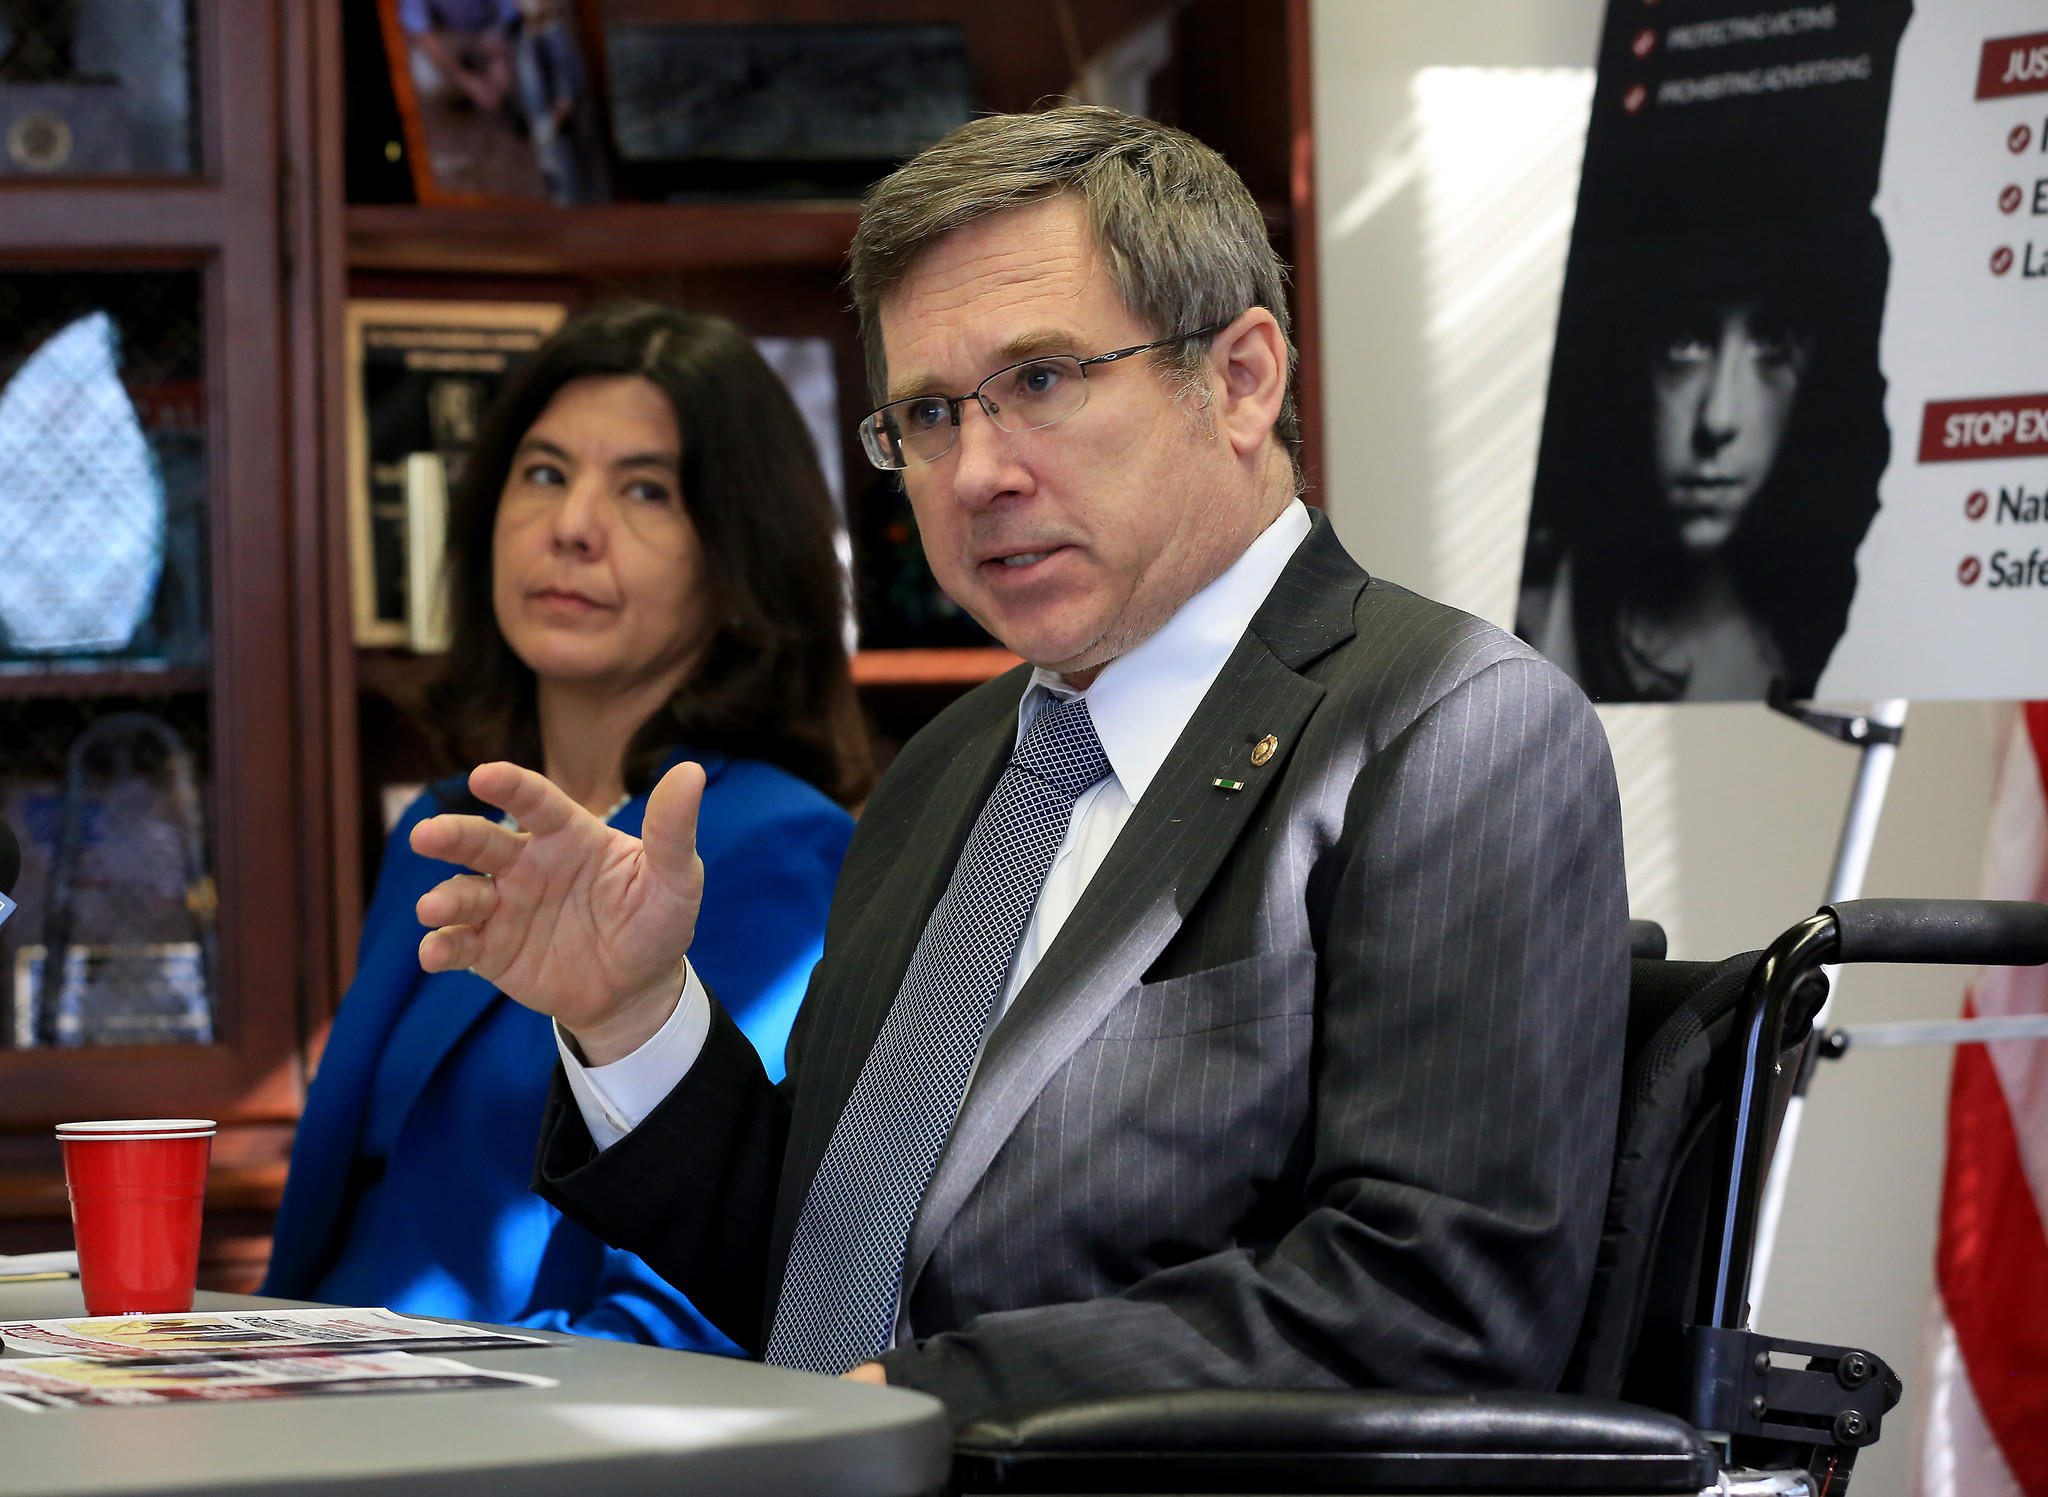 U.S. Sen. Mark Kirk (R-Ill.) and Cook County State's Attorney Anita Alvarez the fight against sex trafficking.